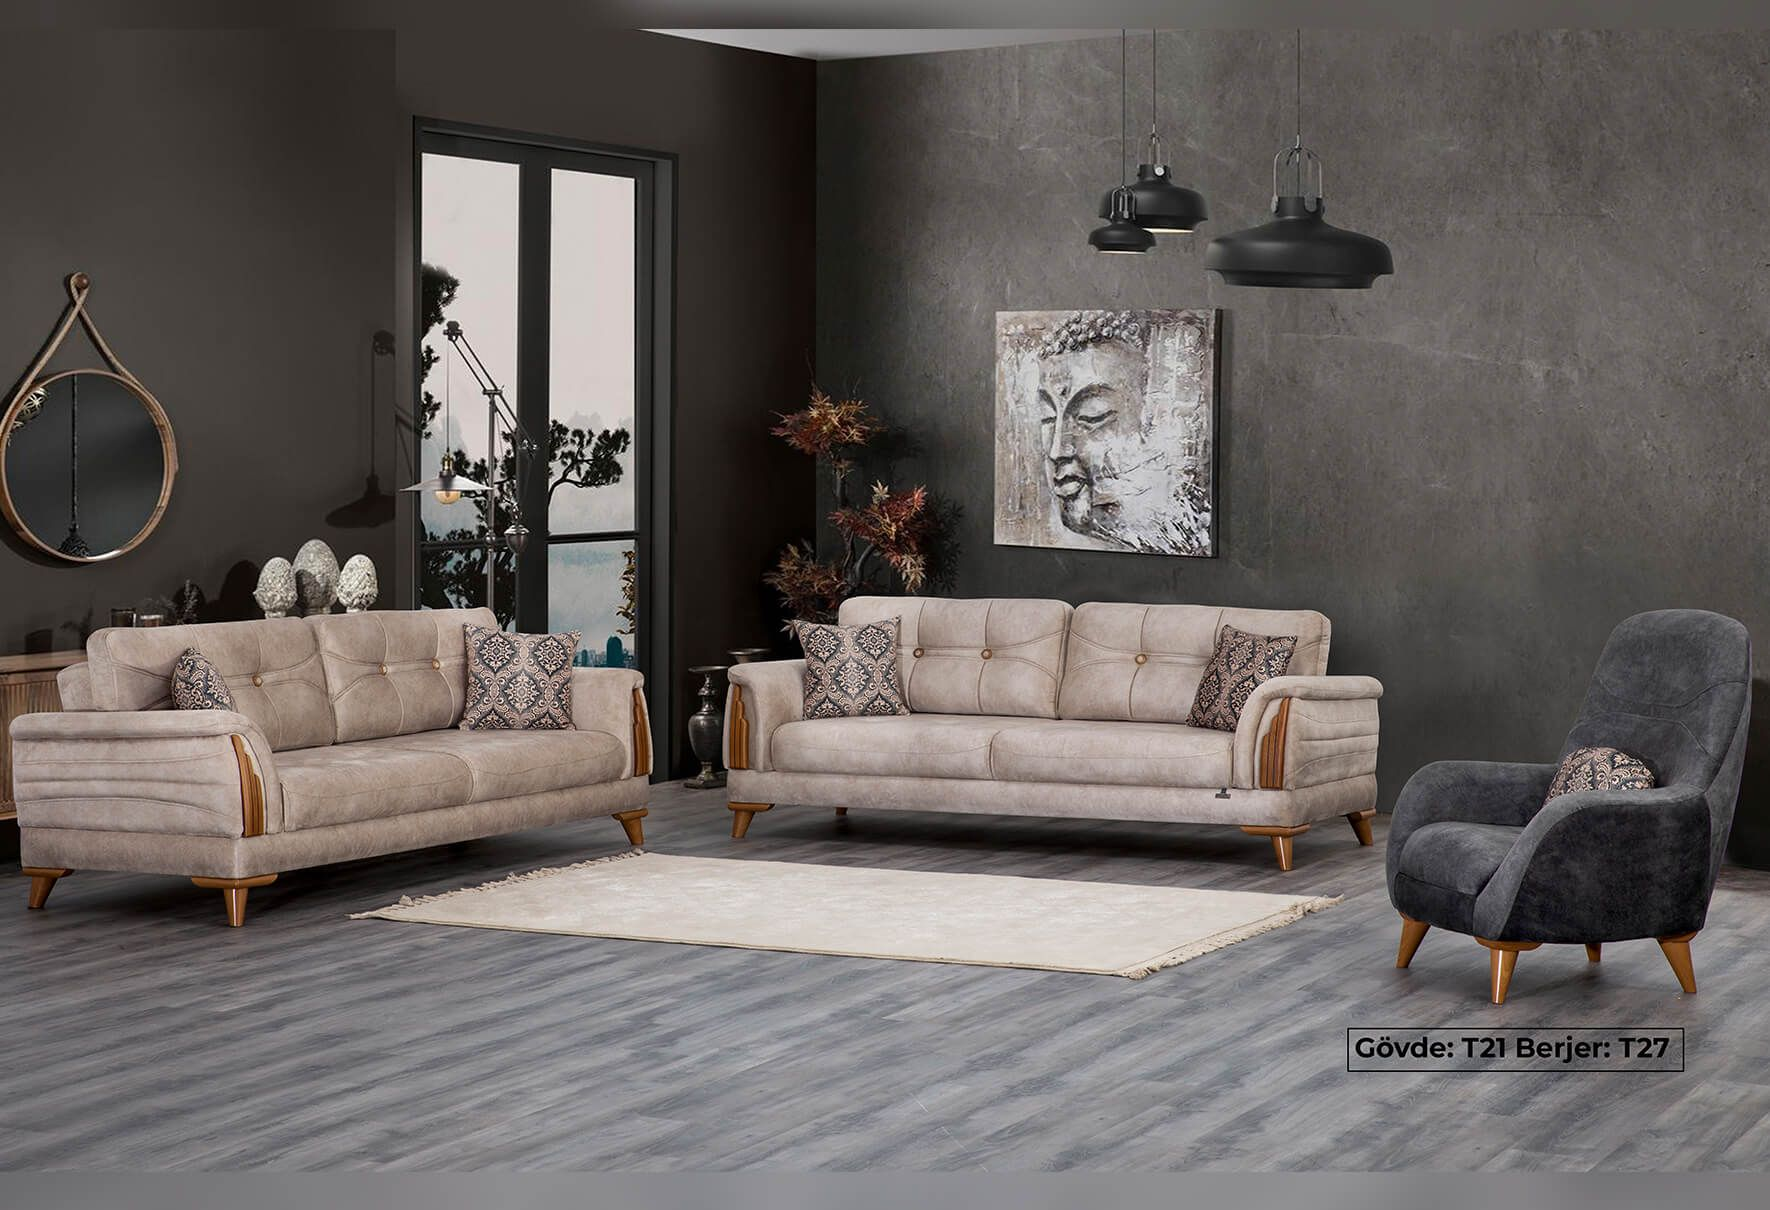 Lux Olivya Koltuk Takimi In 2020 Furniture Home Decor